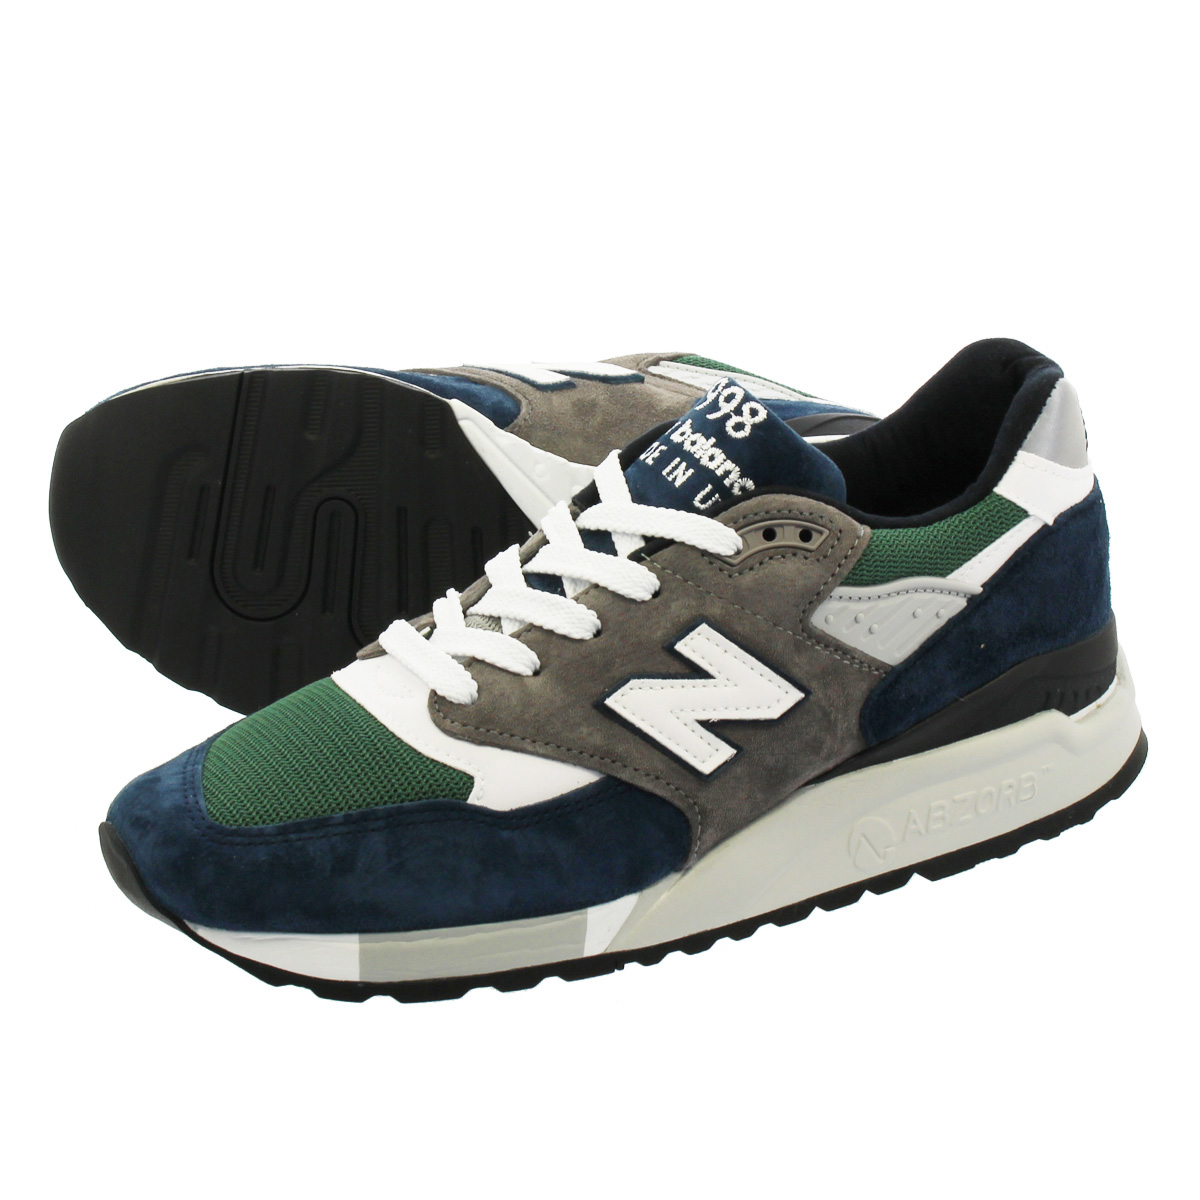 NEW BALANCE M998NL 【MADE IN U.S.A.】 【Dワイズ】 ニューバランス M 998 NL BLUE/GREEN